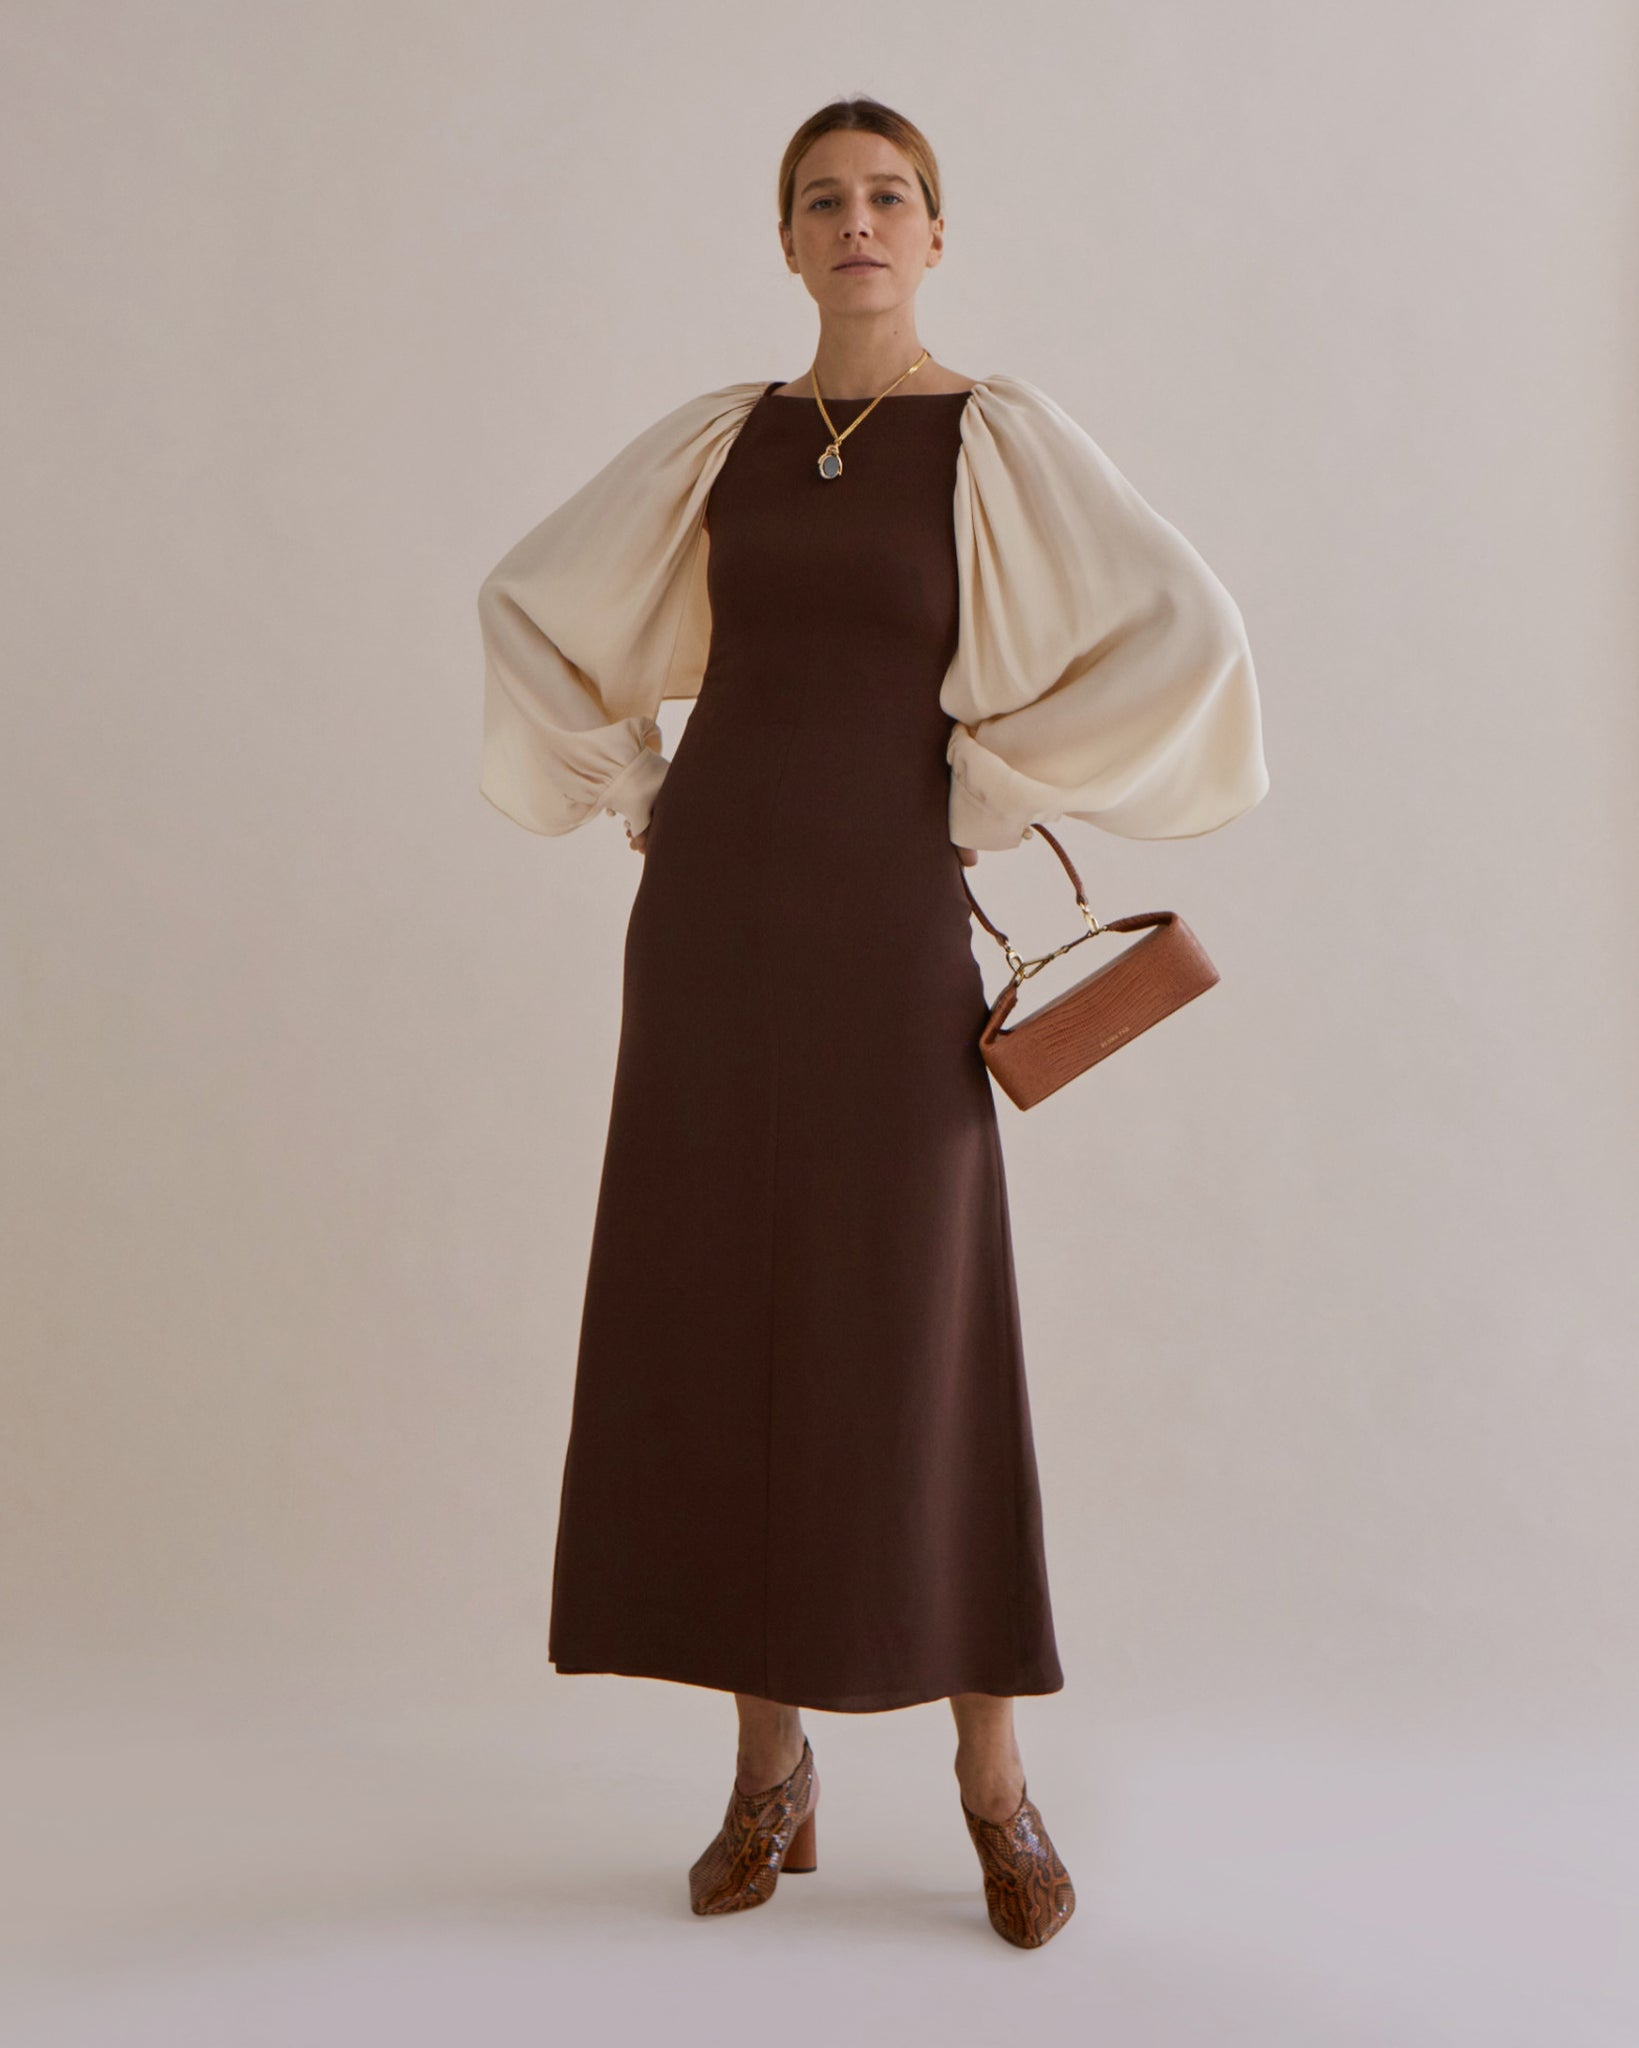 Lila Dress Silk Crepe de Chine Brown & Ivory